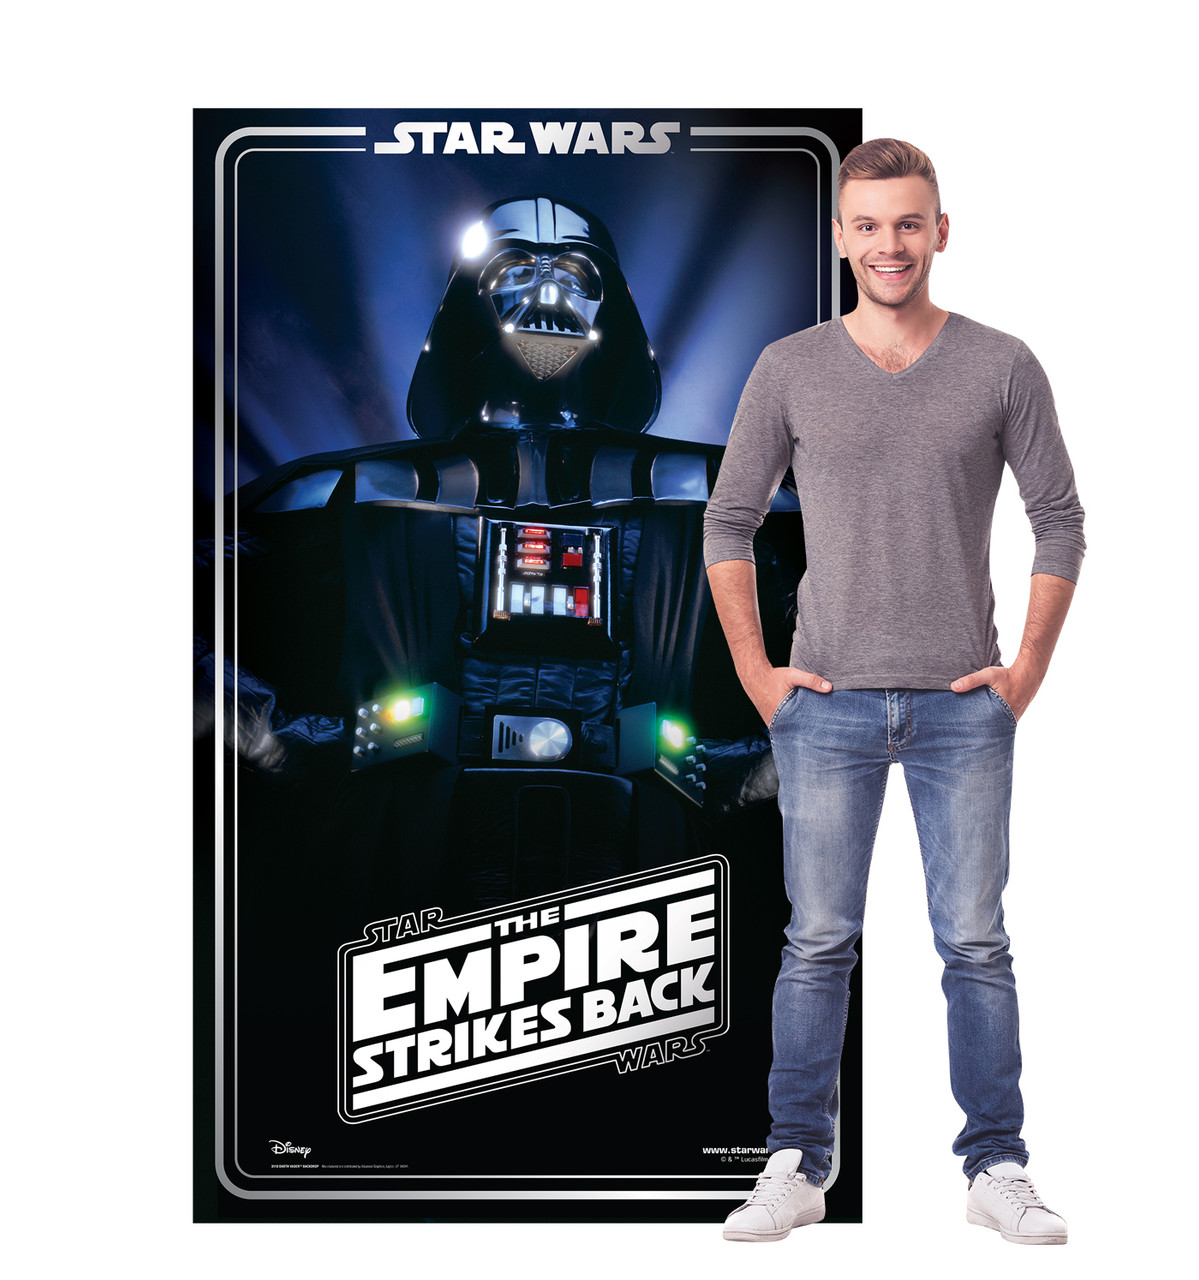 Life-size cardboard standee backdrop of Darth Vader. Celebrating 40 years, with model.